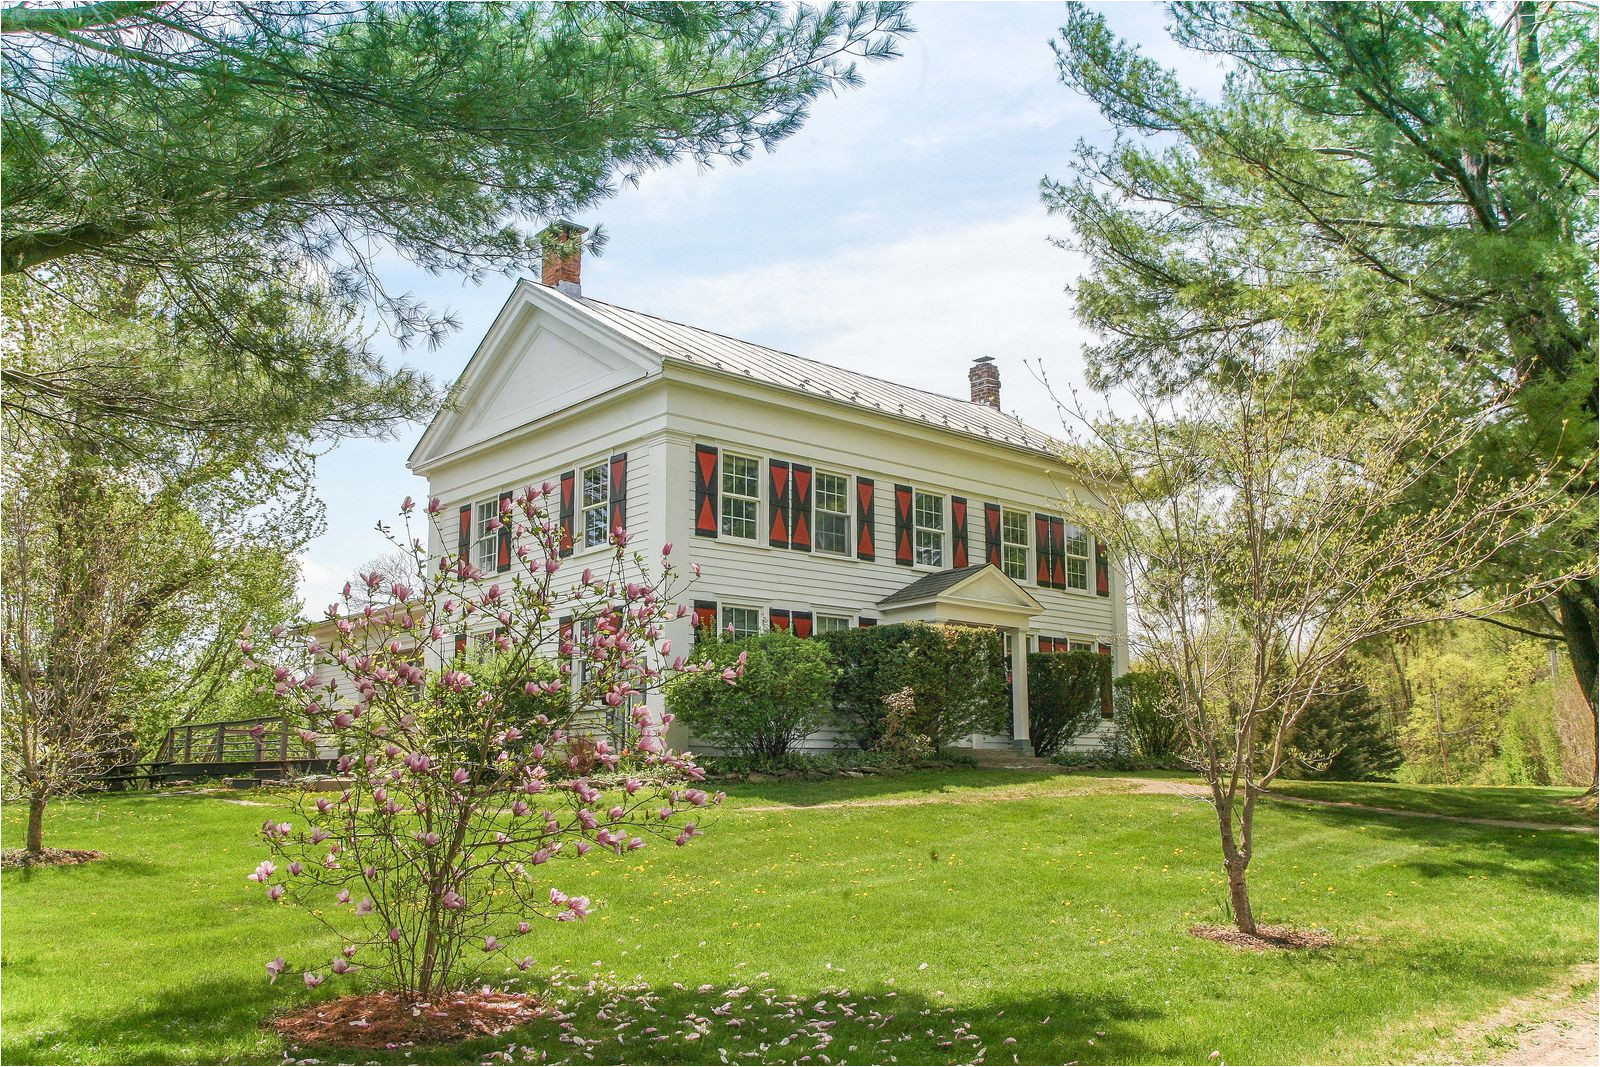 historic and elegant 261 kipp road hudson ny represented exclusively by maret halinen see more eye candy on this home at www halstead com 12350655